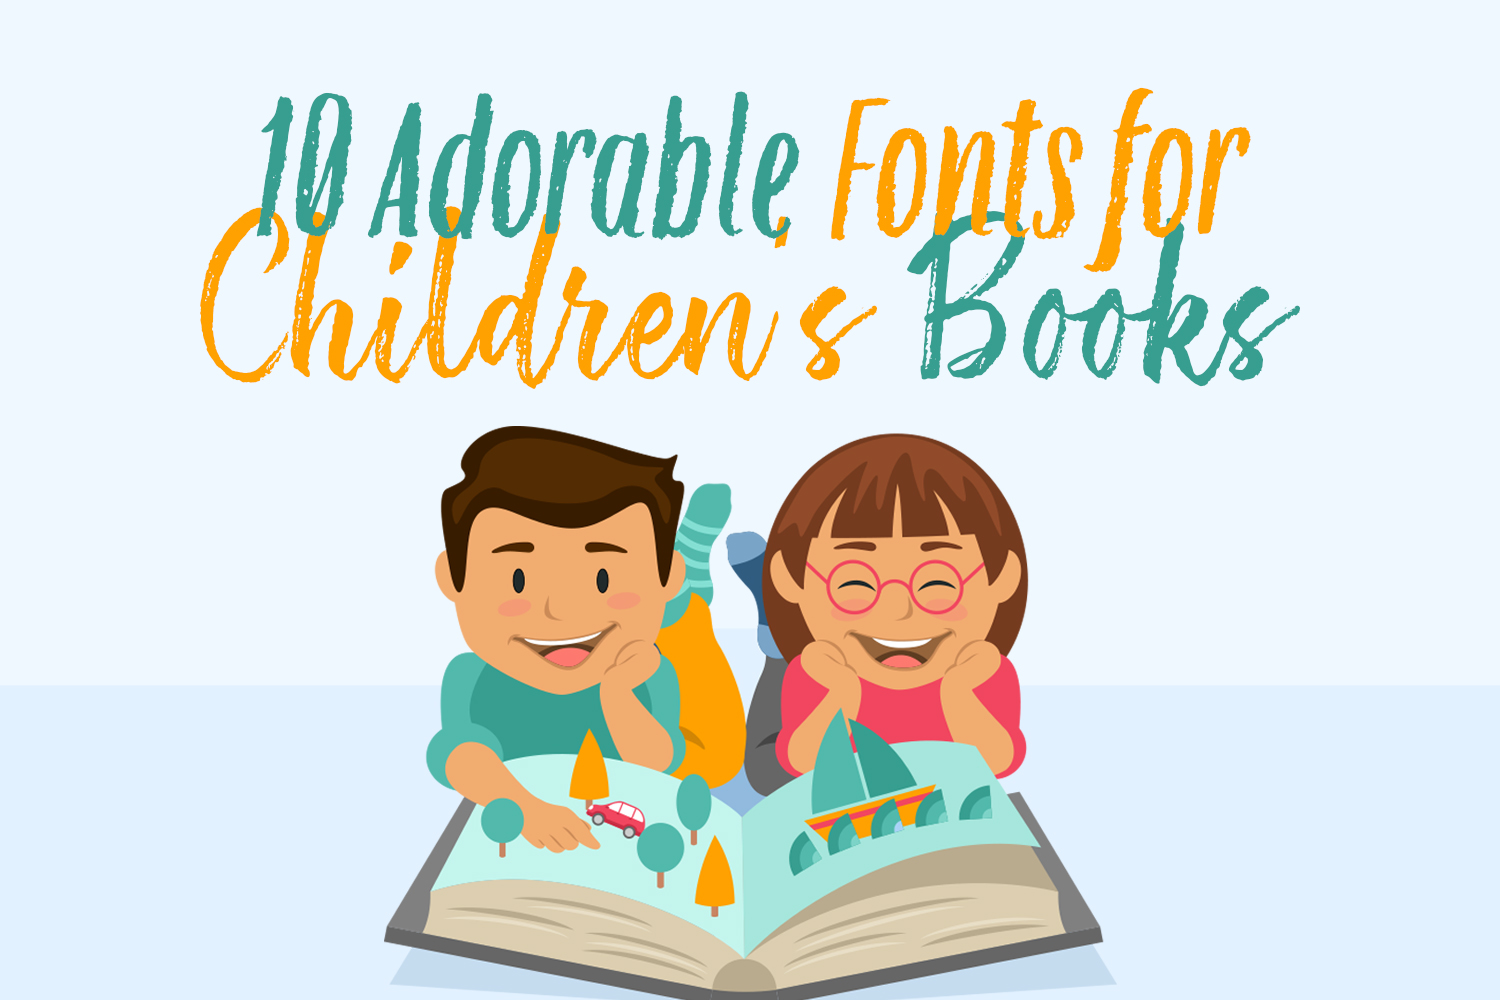 10 Adorable Fonts for Children's books